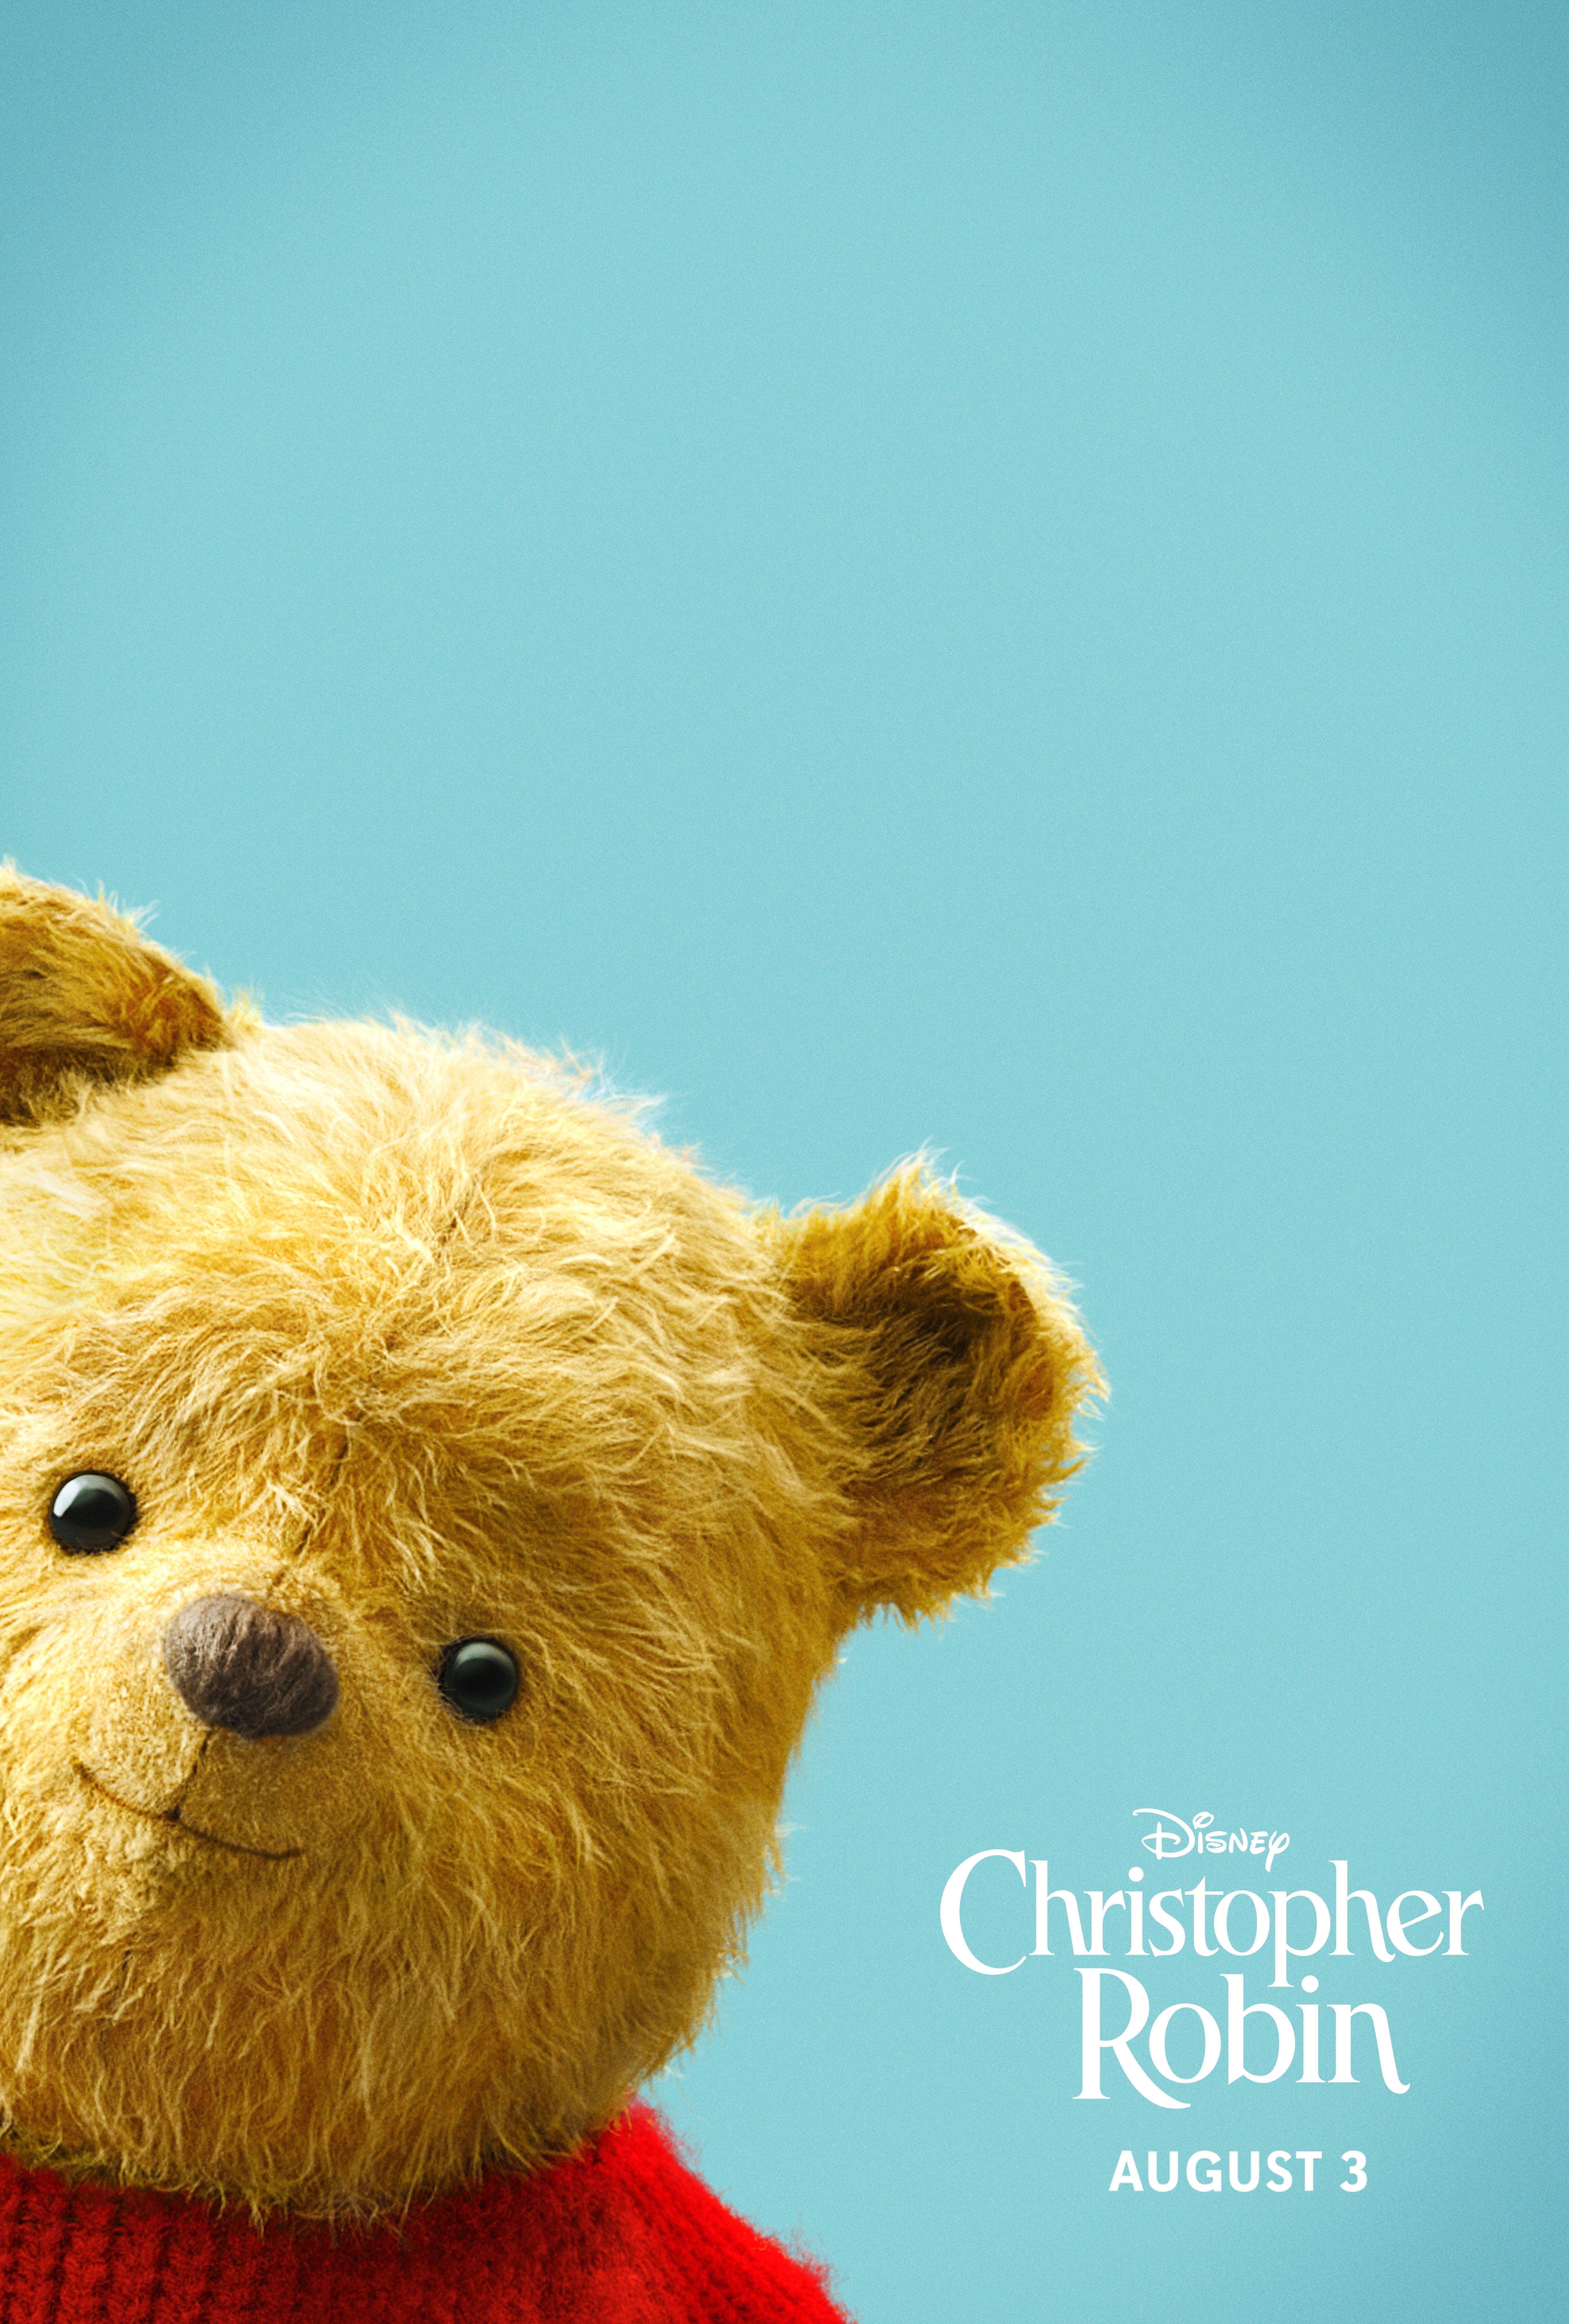 See #ChristopherRobin in theatres August 3. | Winnie De Pooh ...